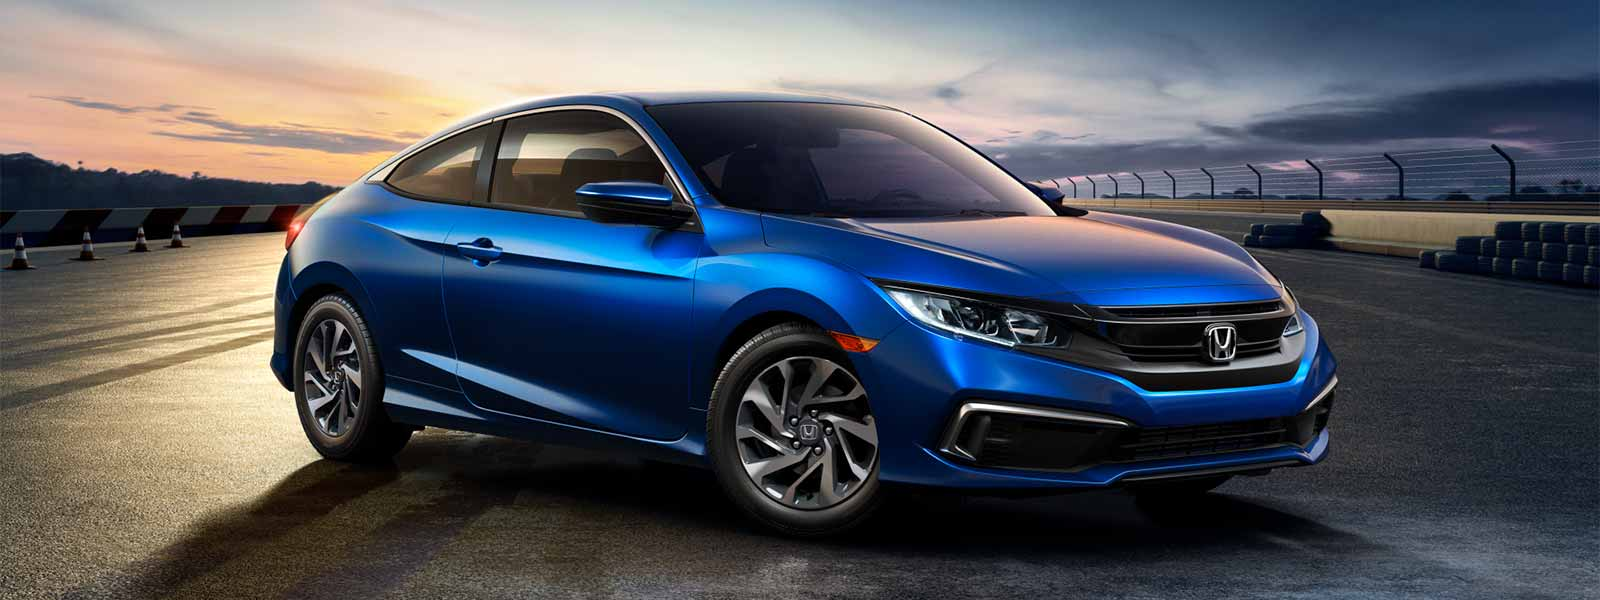 Honda Civic Deals Lansing IL